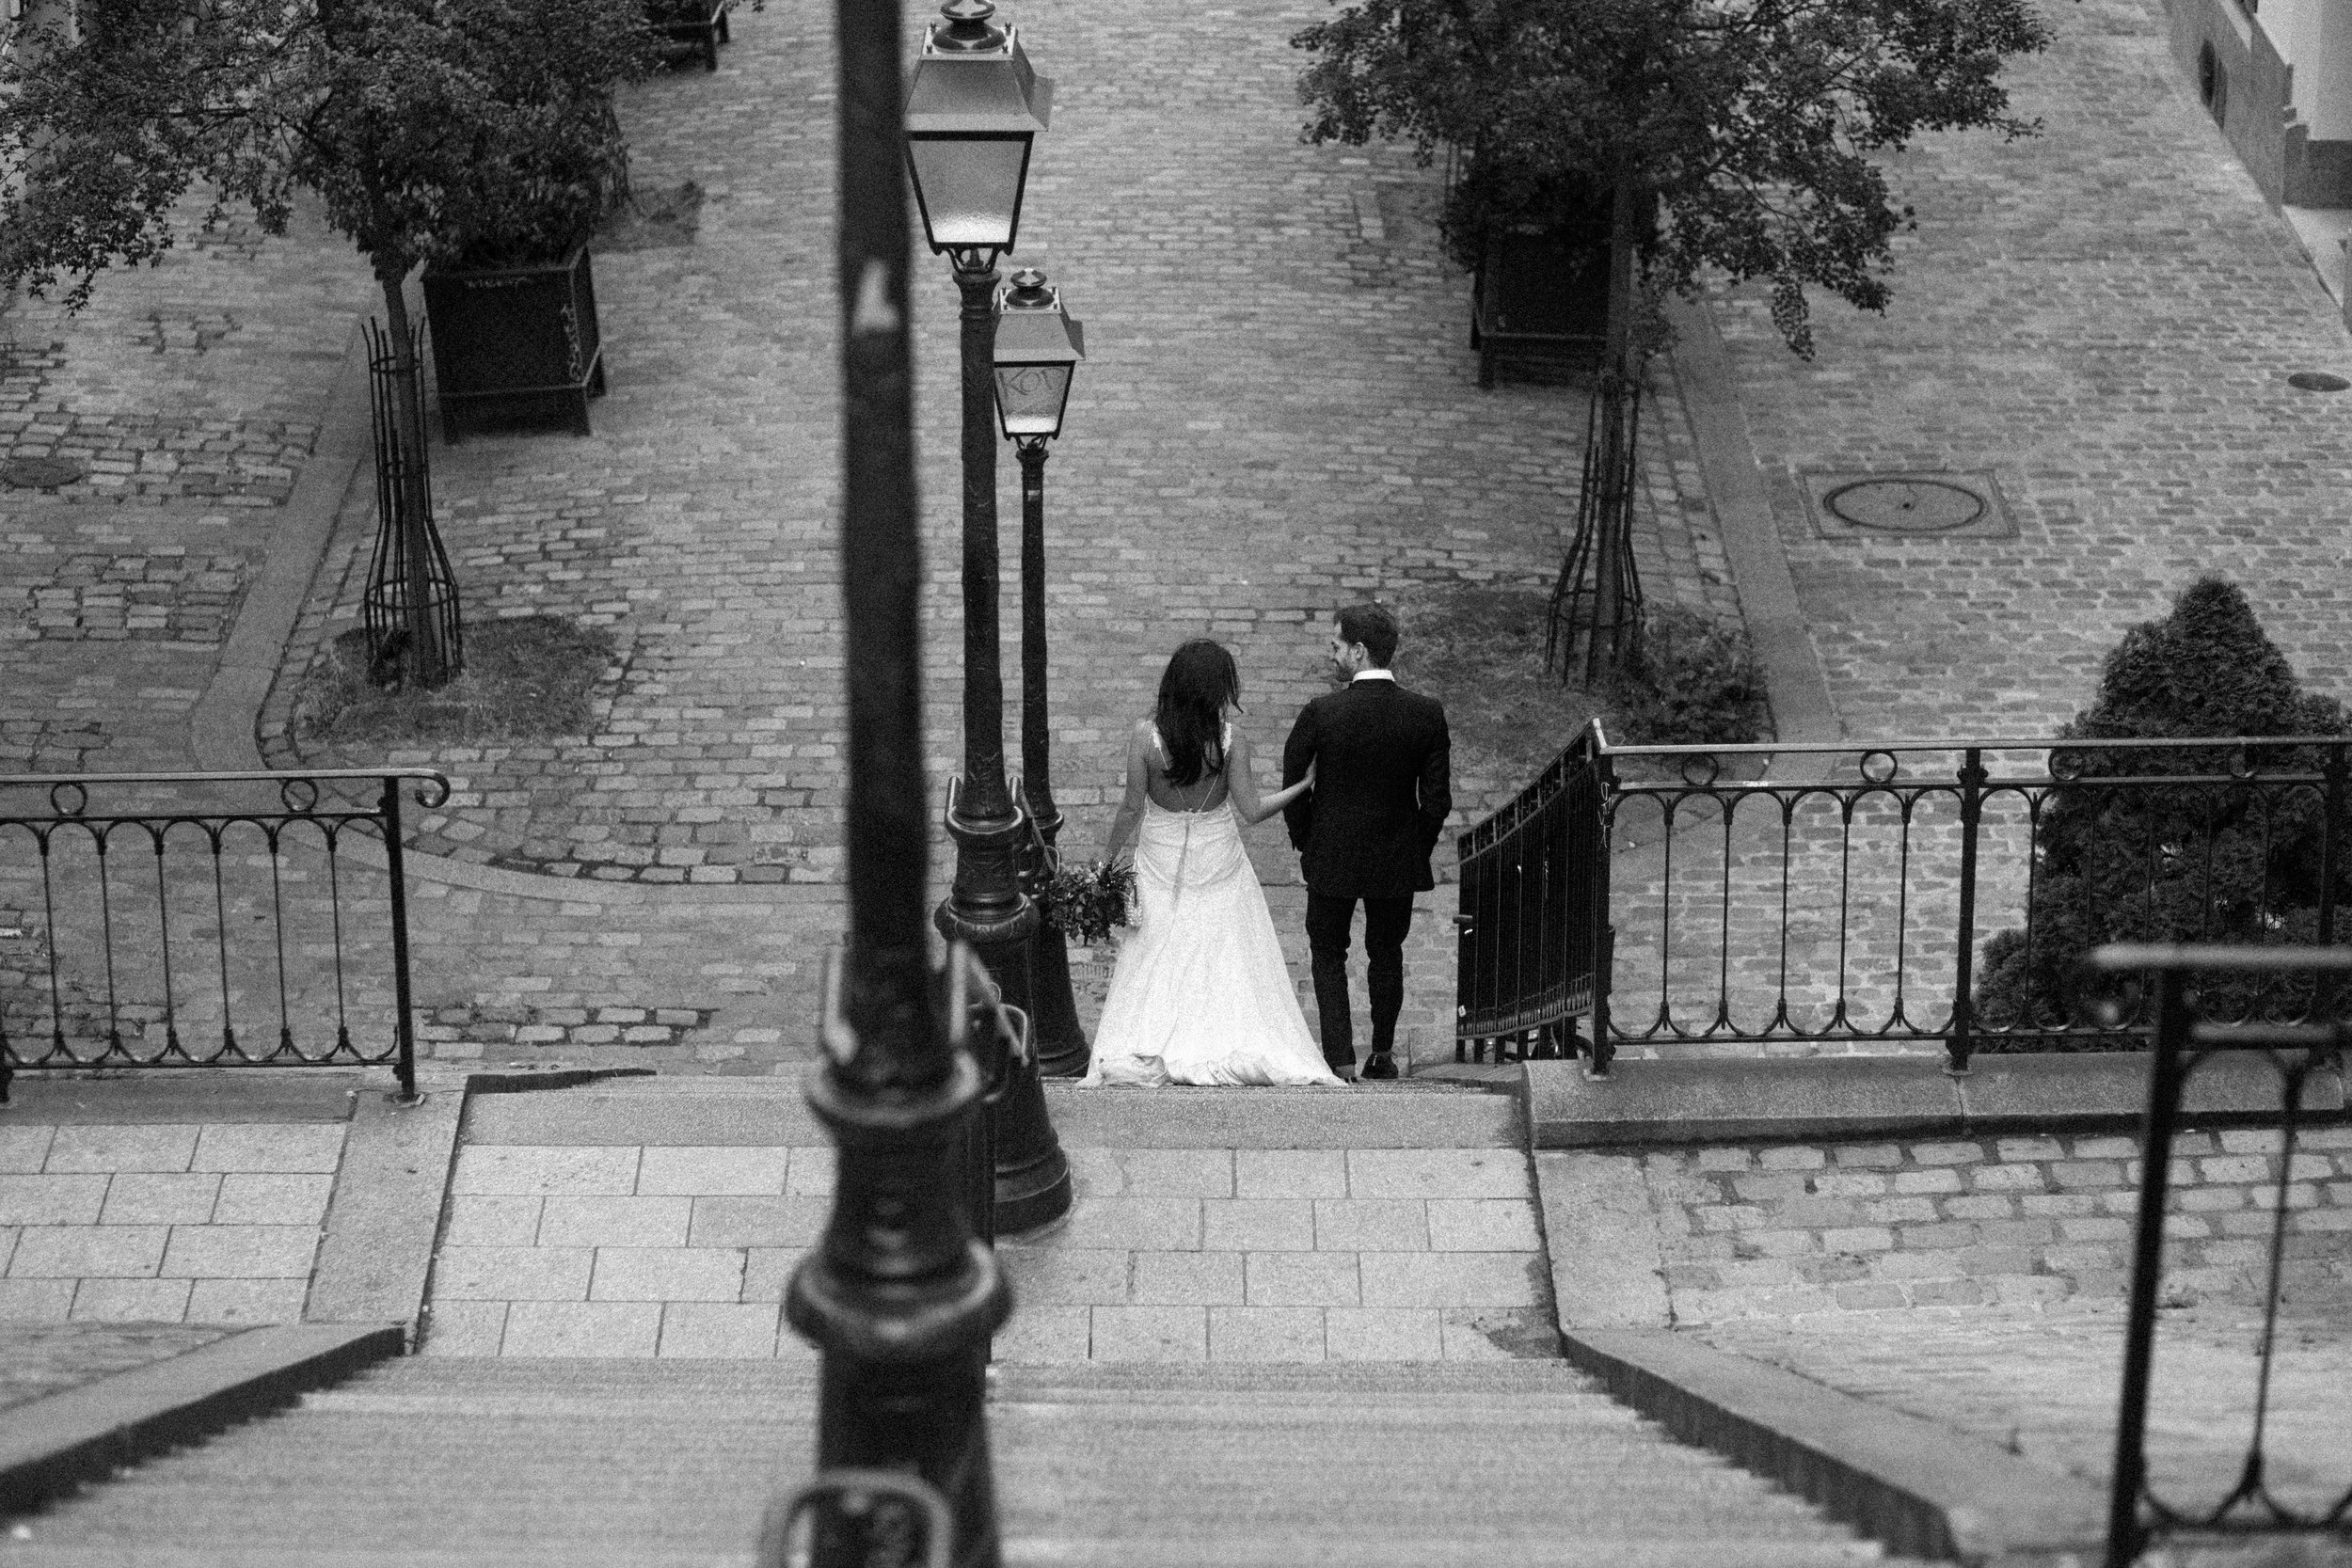 paris wedding photographer craig george hannah and mitch elopment-175.jpg